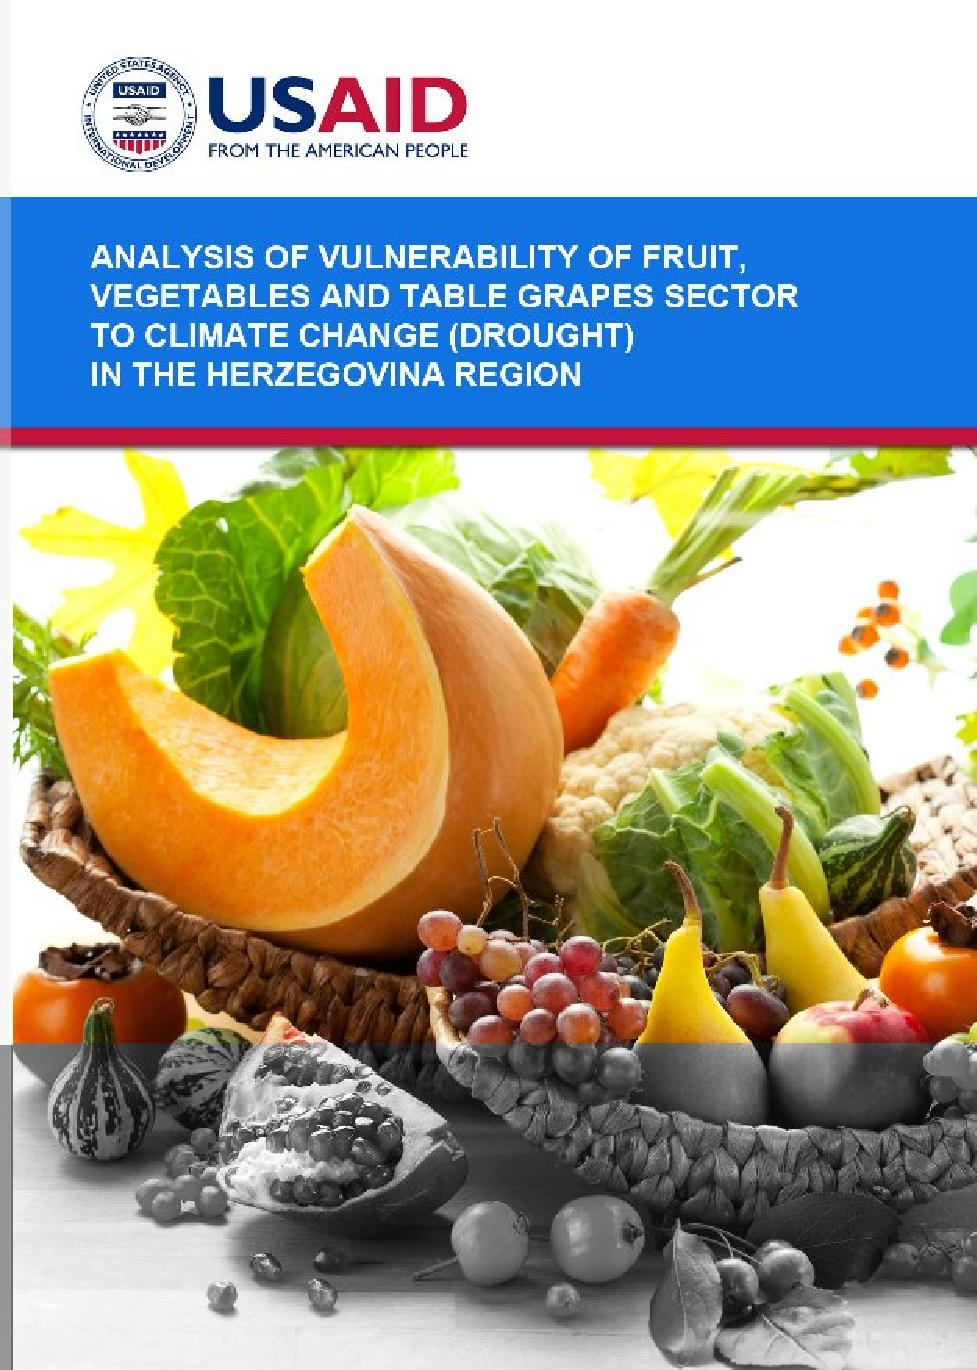 ANALYSIS_OF_VULNERABILITY_OF_FRUIT_VEGETABLES_AND_TABLE_GRAPES_SECTOR_TO_CLIMATE_CHANGE_DROUGHT_IN_HERCEGOVINA_REGION-page-001